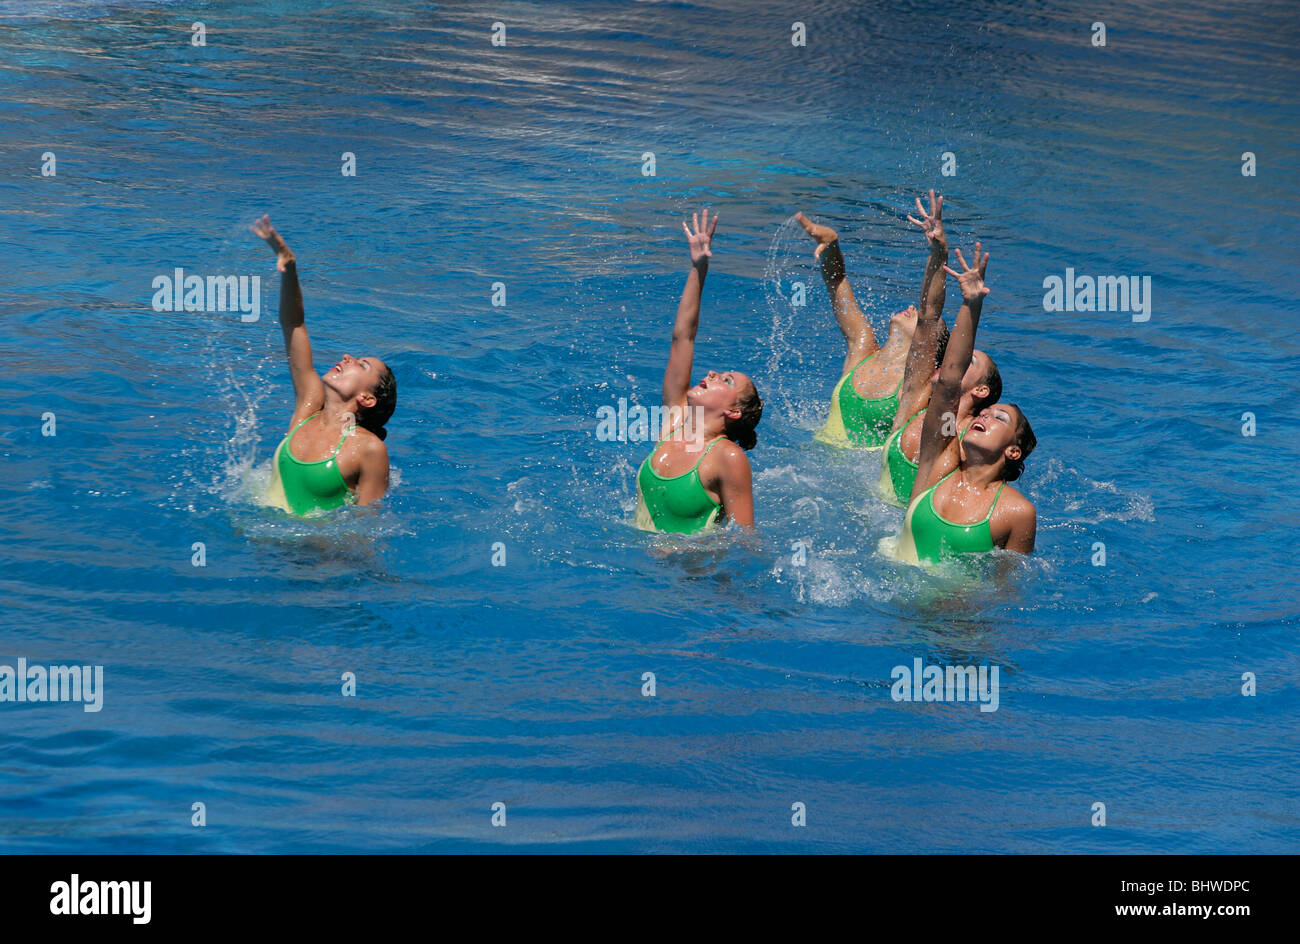 Synchronized swimmers - Stock Image